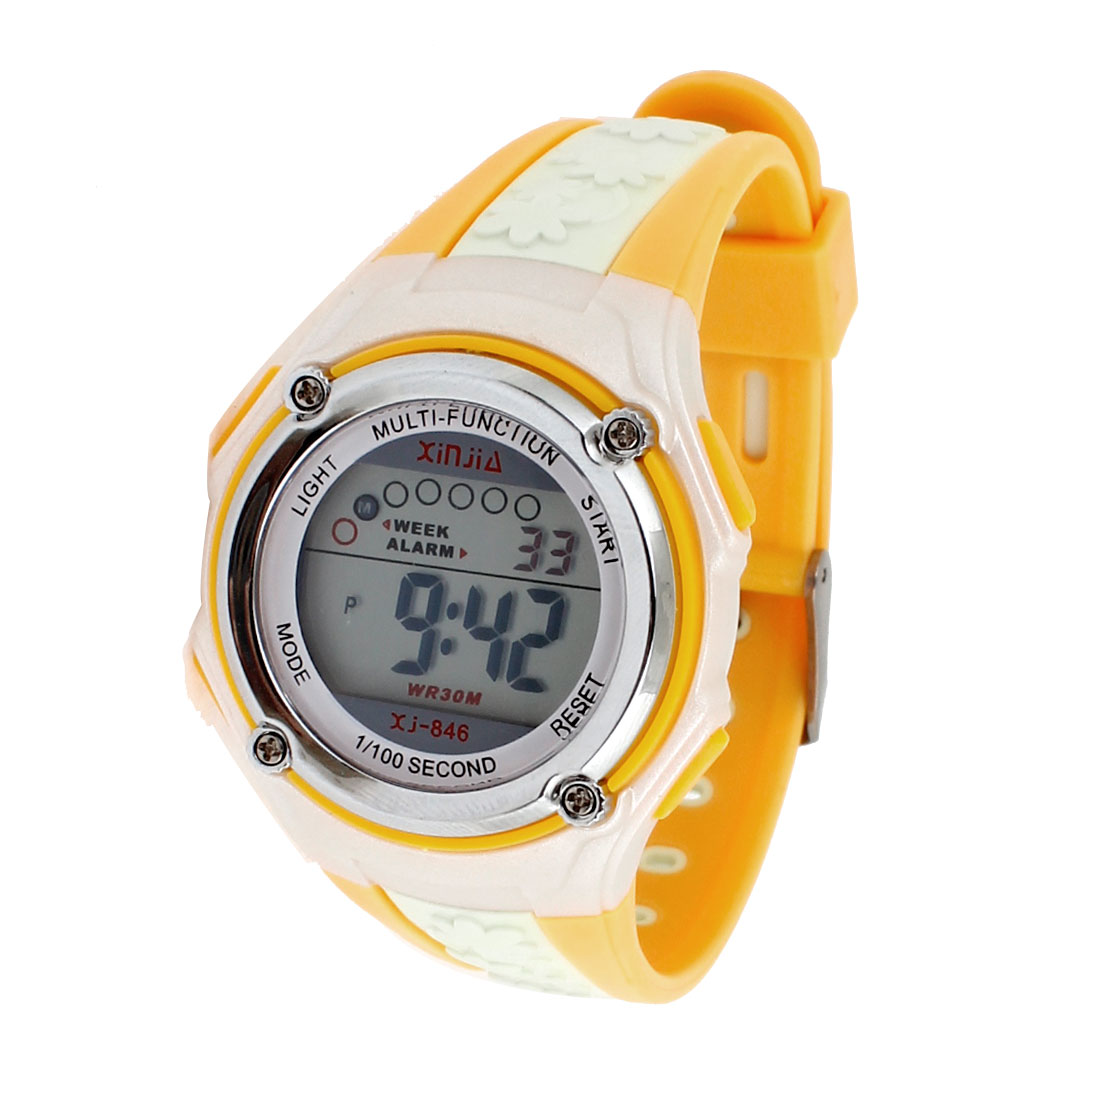 Soft Plastic Flower Pattern Adjustable Band Sports Digital Watch Yellow